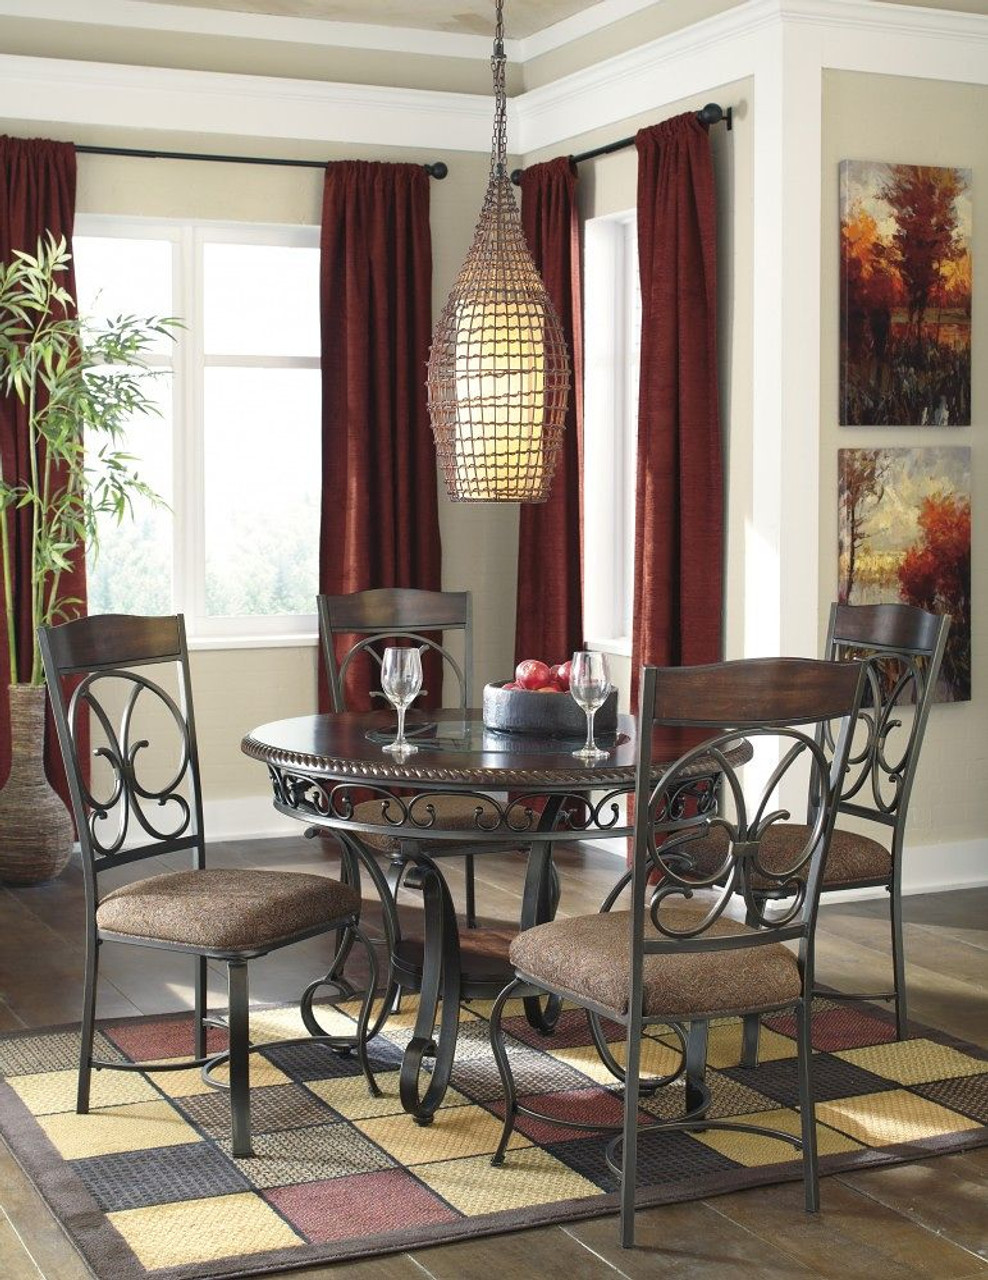 Glambrey 5 Pc. Round Dining Room Table & 4 Upholstered Side Chairs